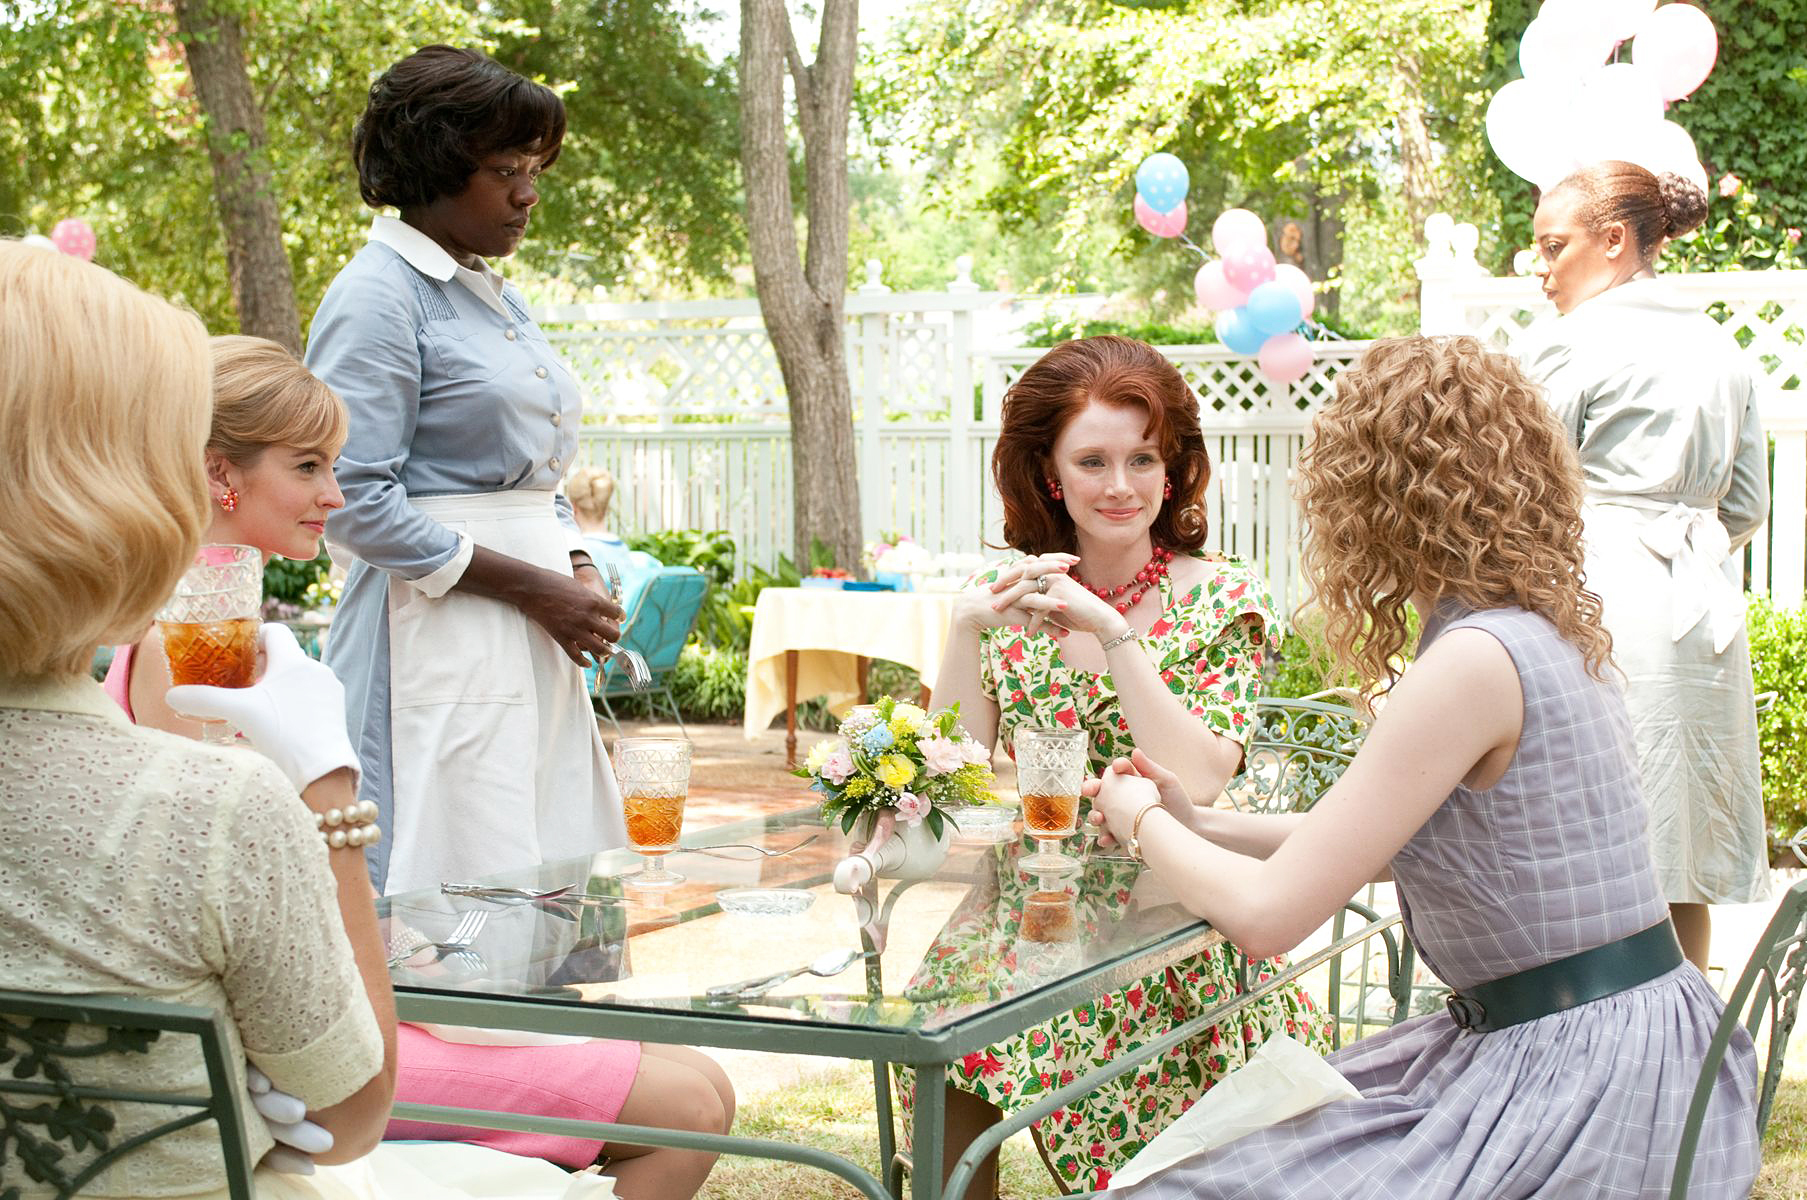 Viola Davis and Bryce Dallas Howard in The Help Bryce Dallas Howard Says She Wouldnt Star in The Help If It Were Made Today